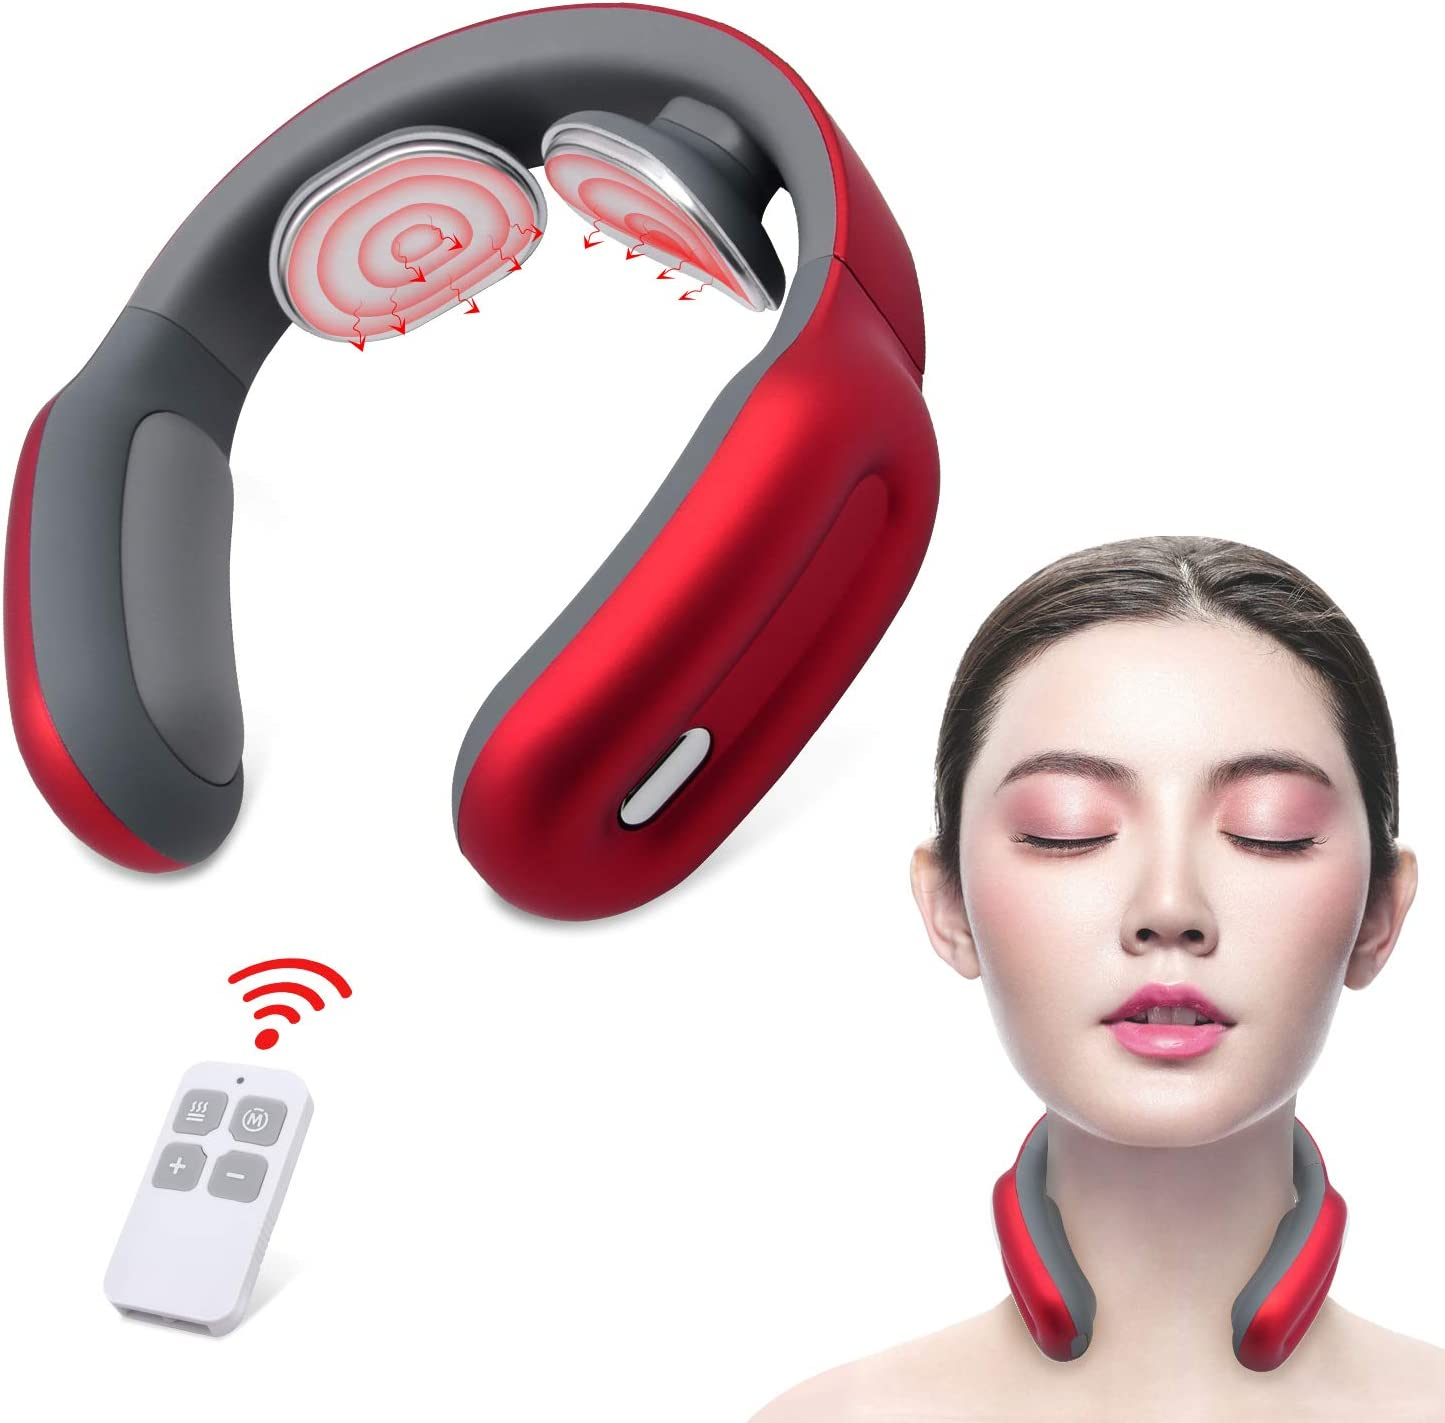 Neck Massager, Intelligent Neck Massage with Heat, Smart Cordless Deep Tissue Trigger Point with 3 Modes 15 Intensities, Ideal Gift for Friends and Family Used at Office, Home, Sport, Travel